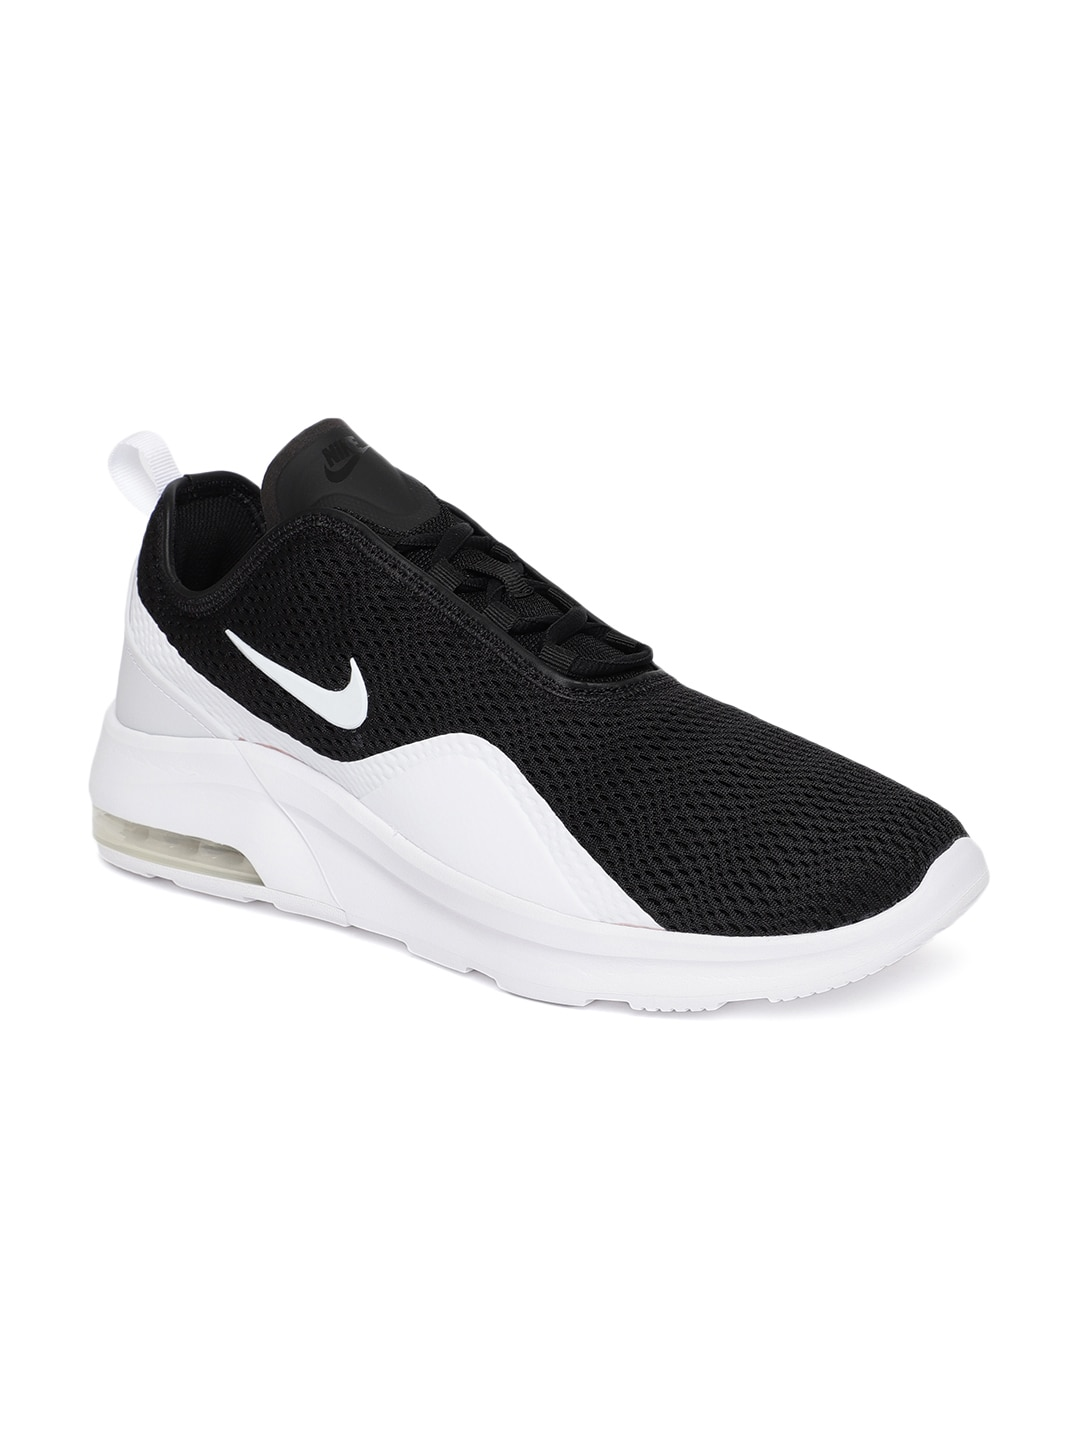 6c1c0074e56e Nike Black Shoes - Buy Nike Black Shoes Online in India